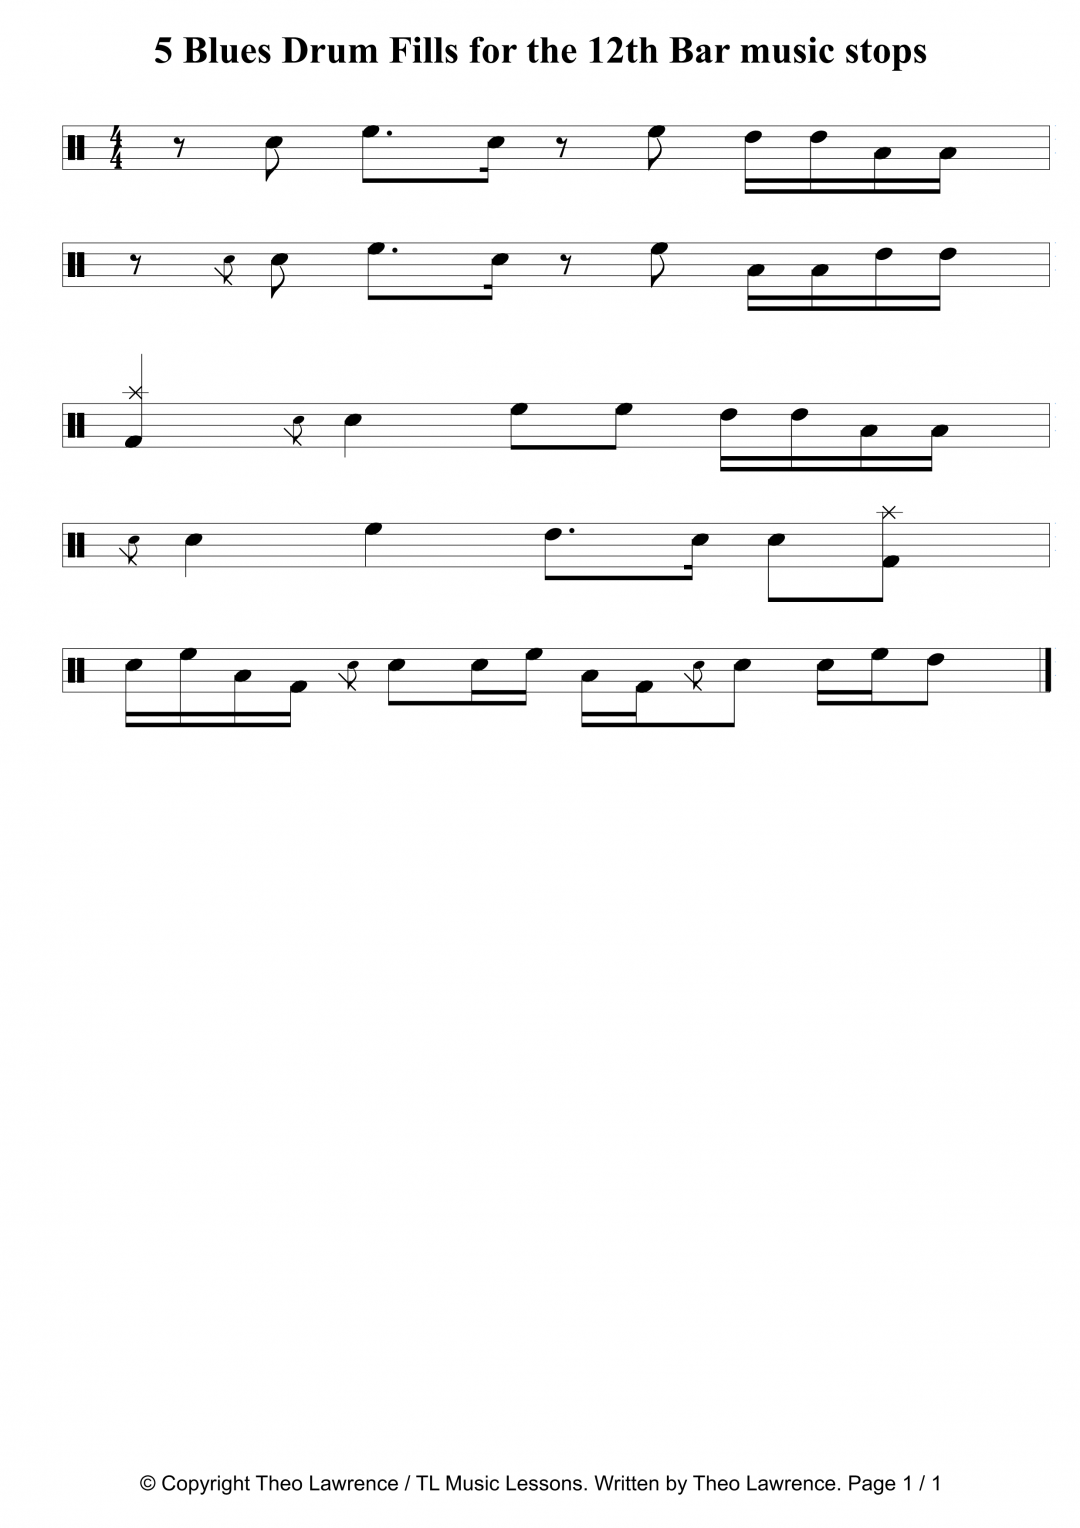 5 Blues Drum Fills for the 12th Bar music stops